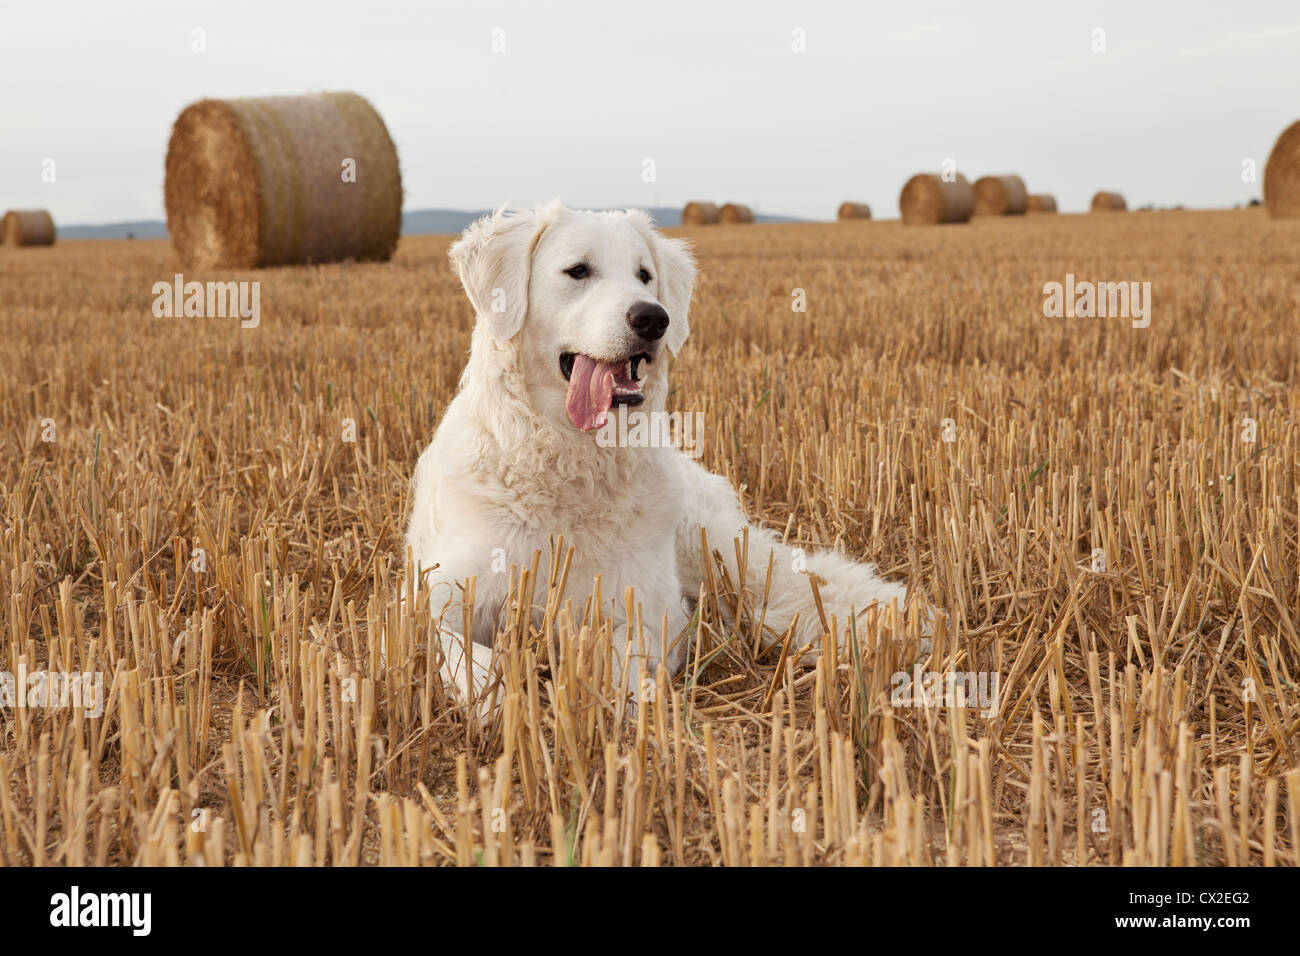 Kuvacz Hund Welpen puppies dog white sitting sitzend Wiese grün green grass aufmerksam attentively Europa Europe - Stock Image